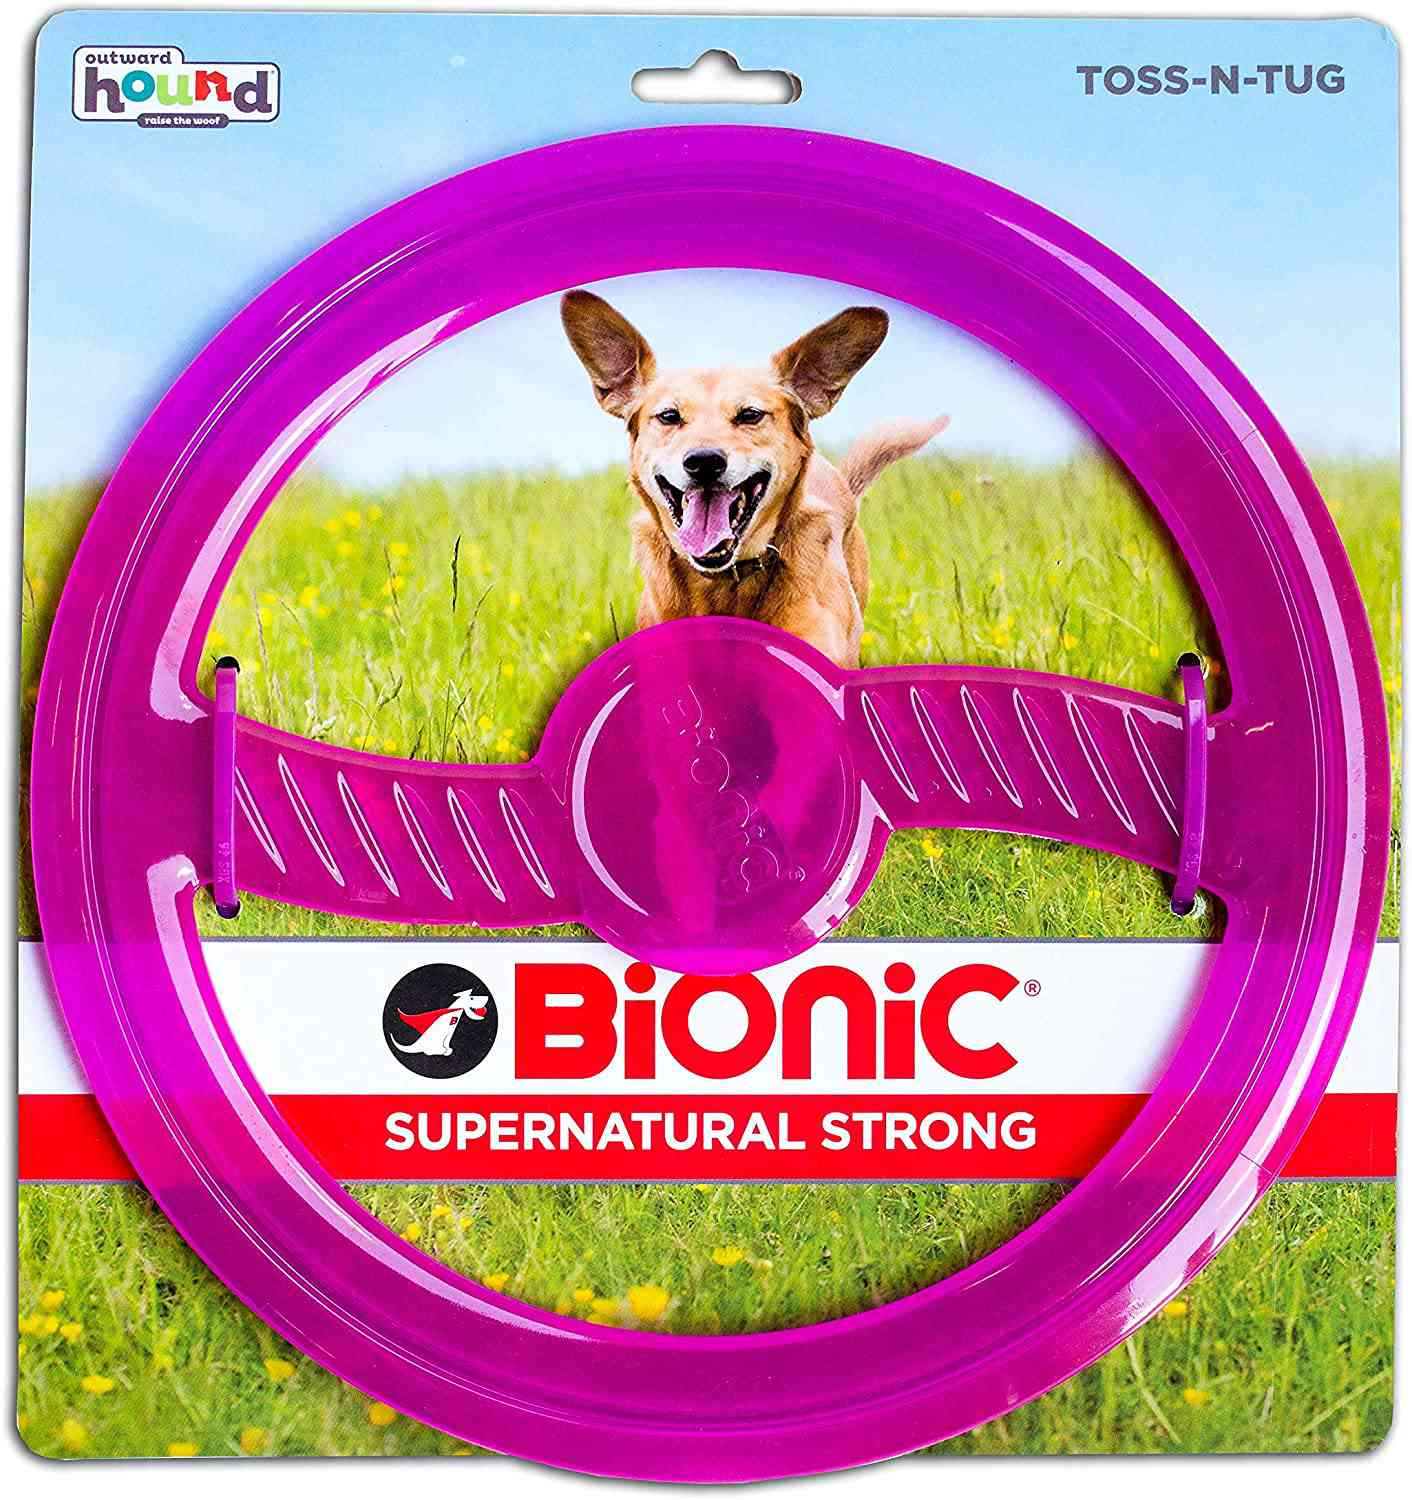 Outward Hound BIONIC Toss N' Tug Fetch and Chew Toy for Dogs